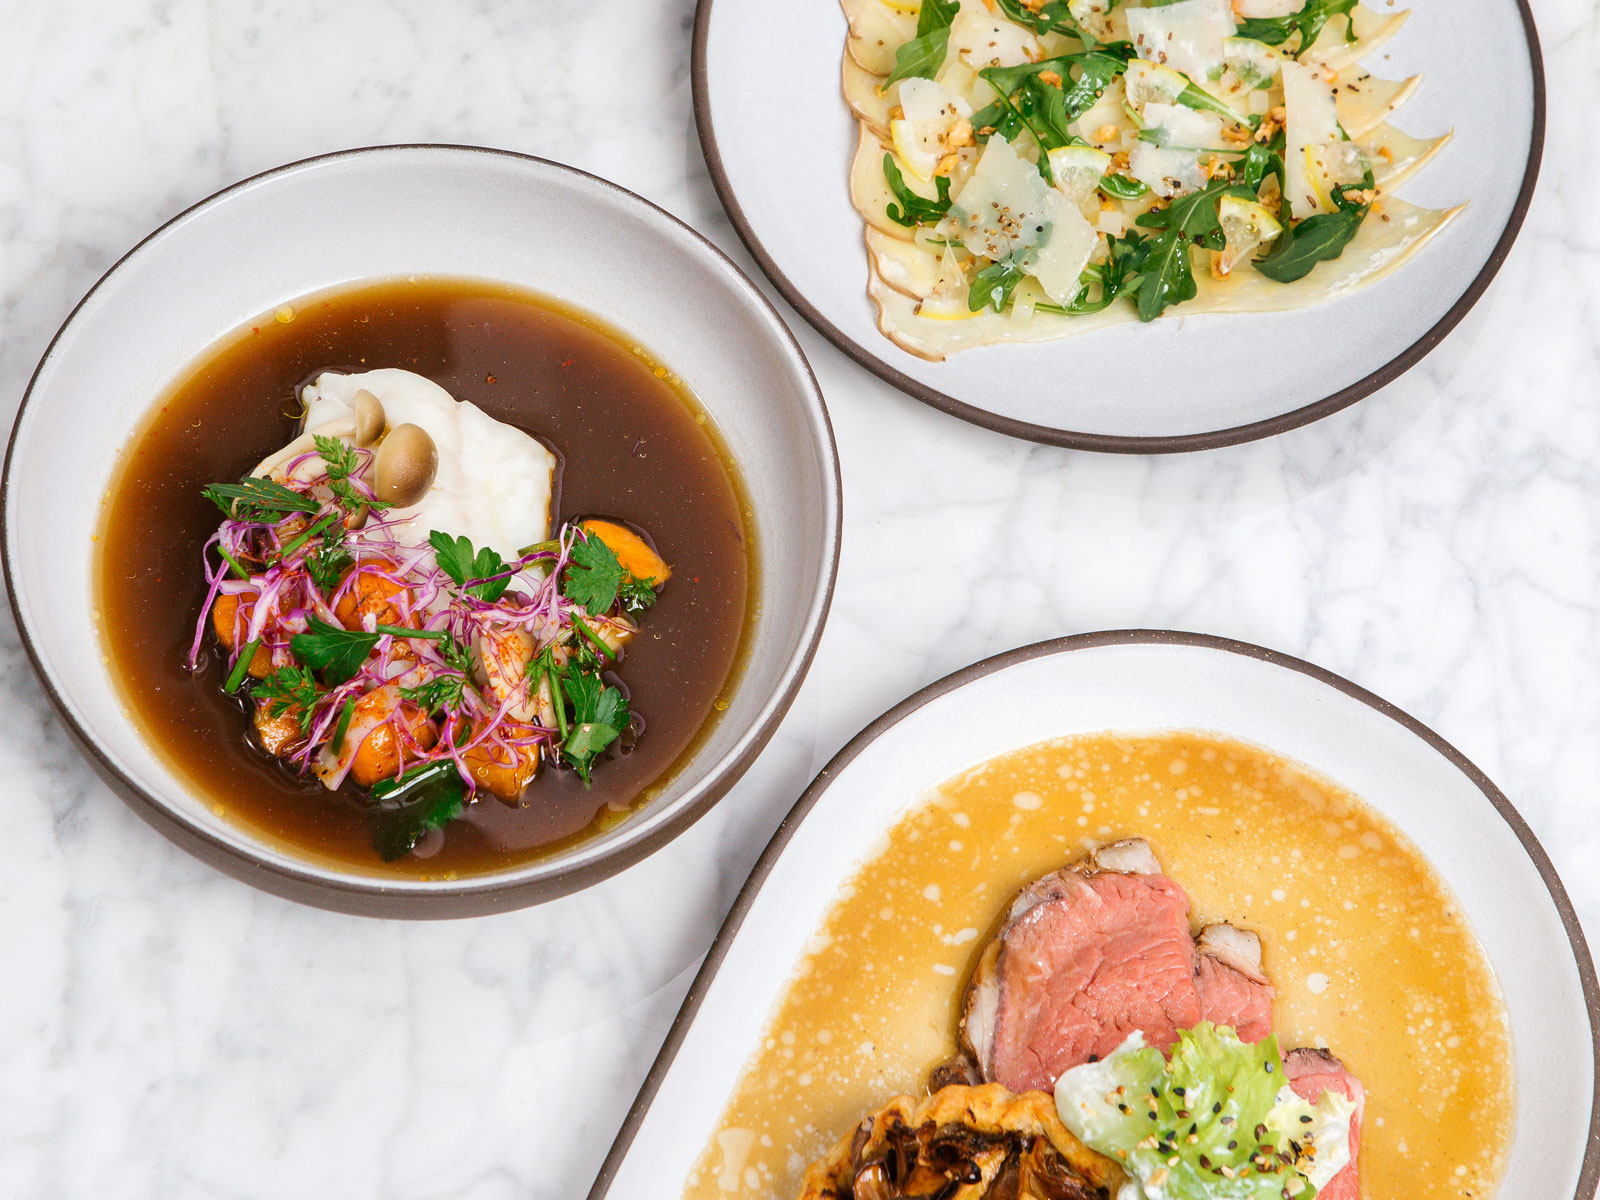 What to Expect from the Met's New Winter Menu